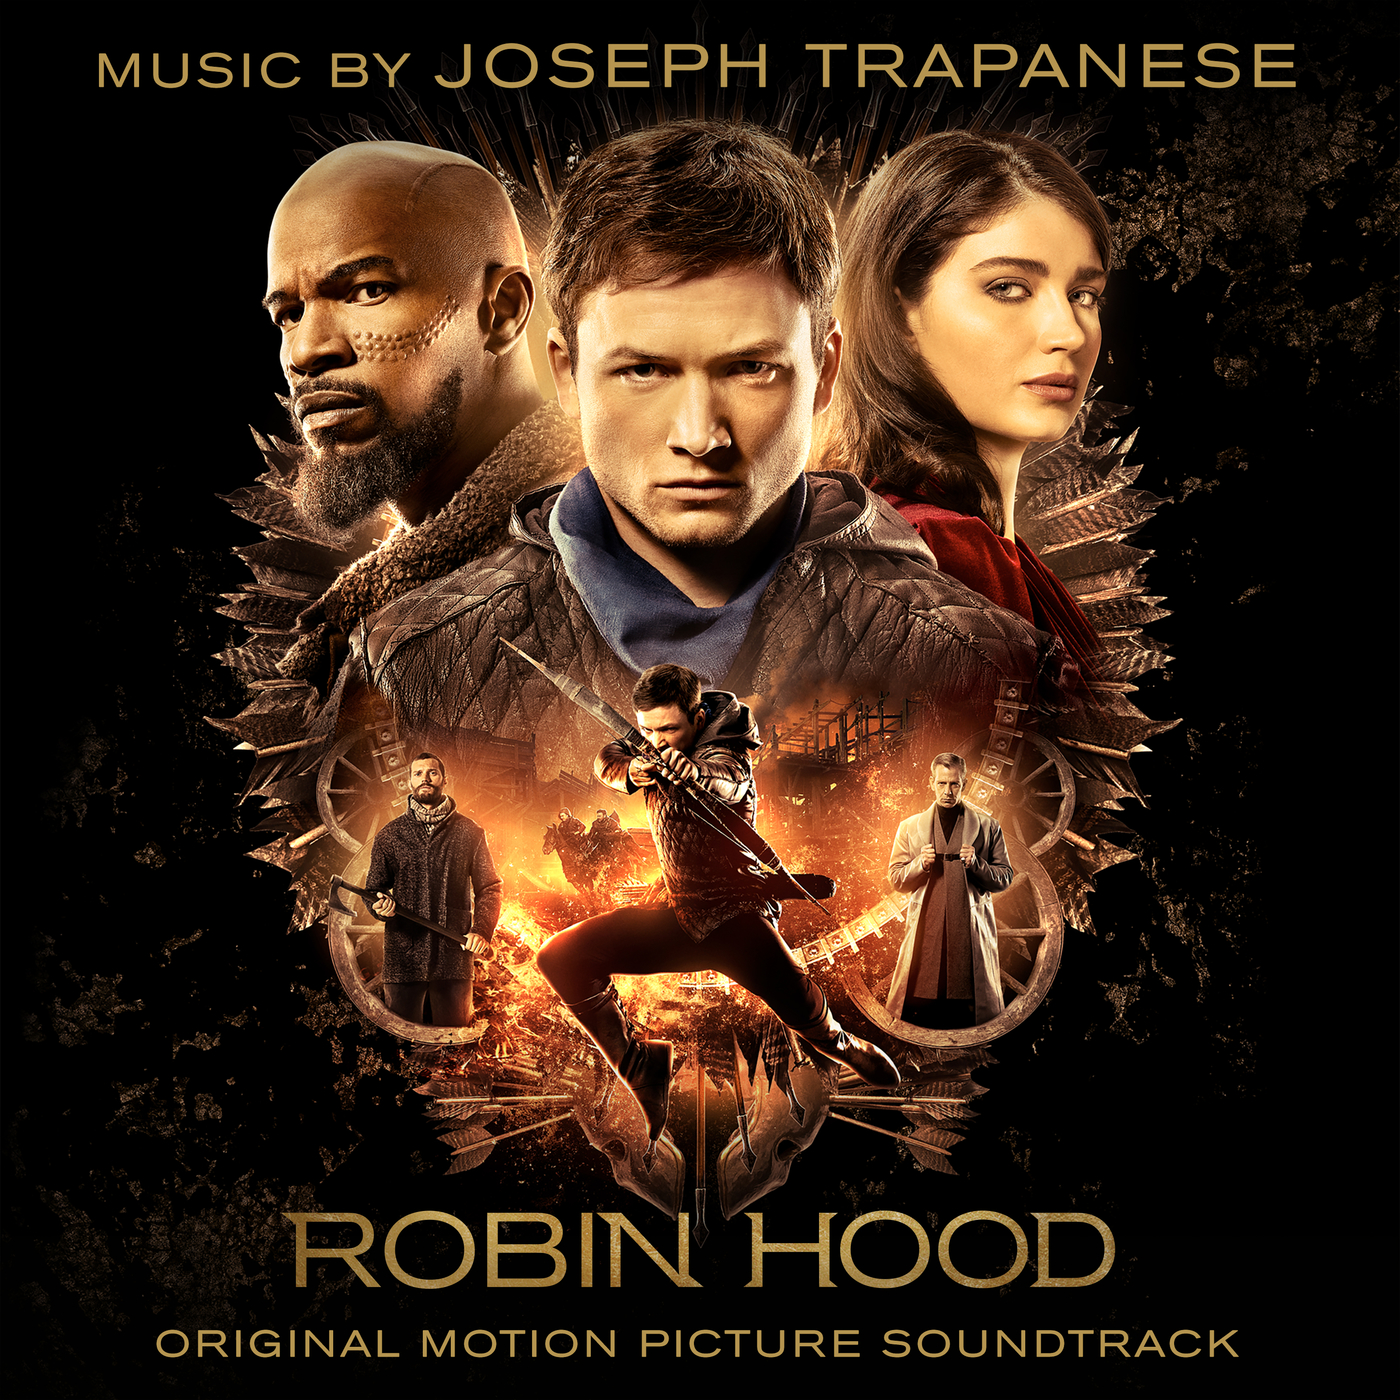 Robin Hood (Original Motion Picture Soundtrack) - Joseph Trapanese